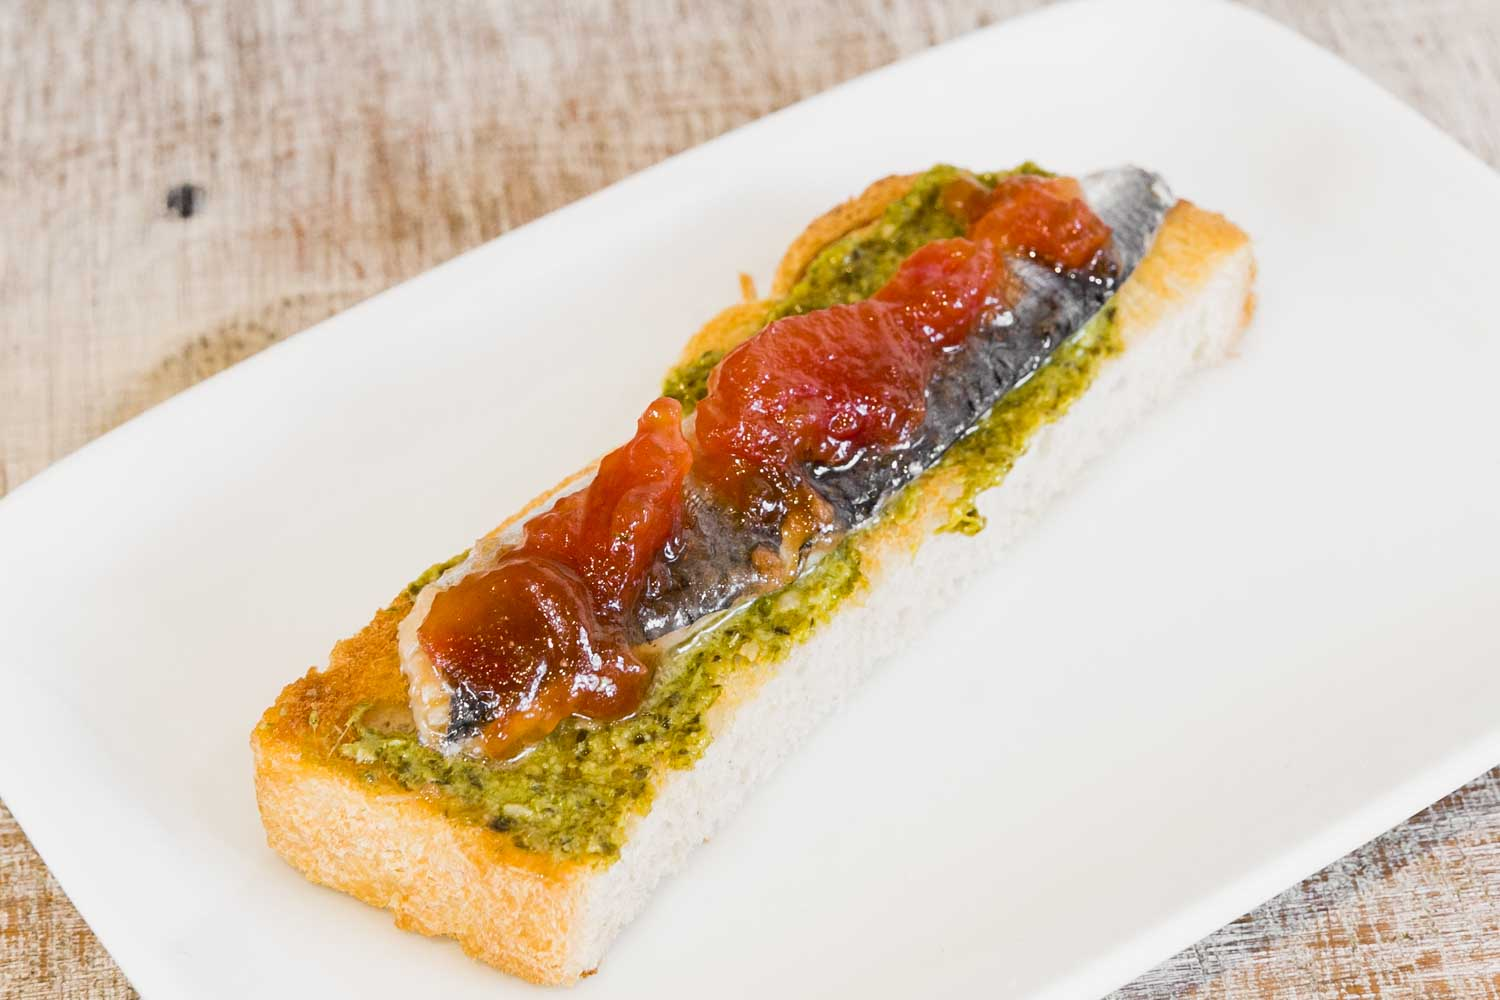 Bread with sardine